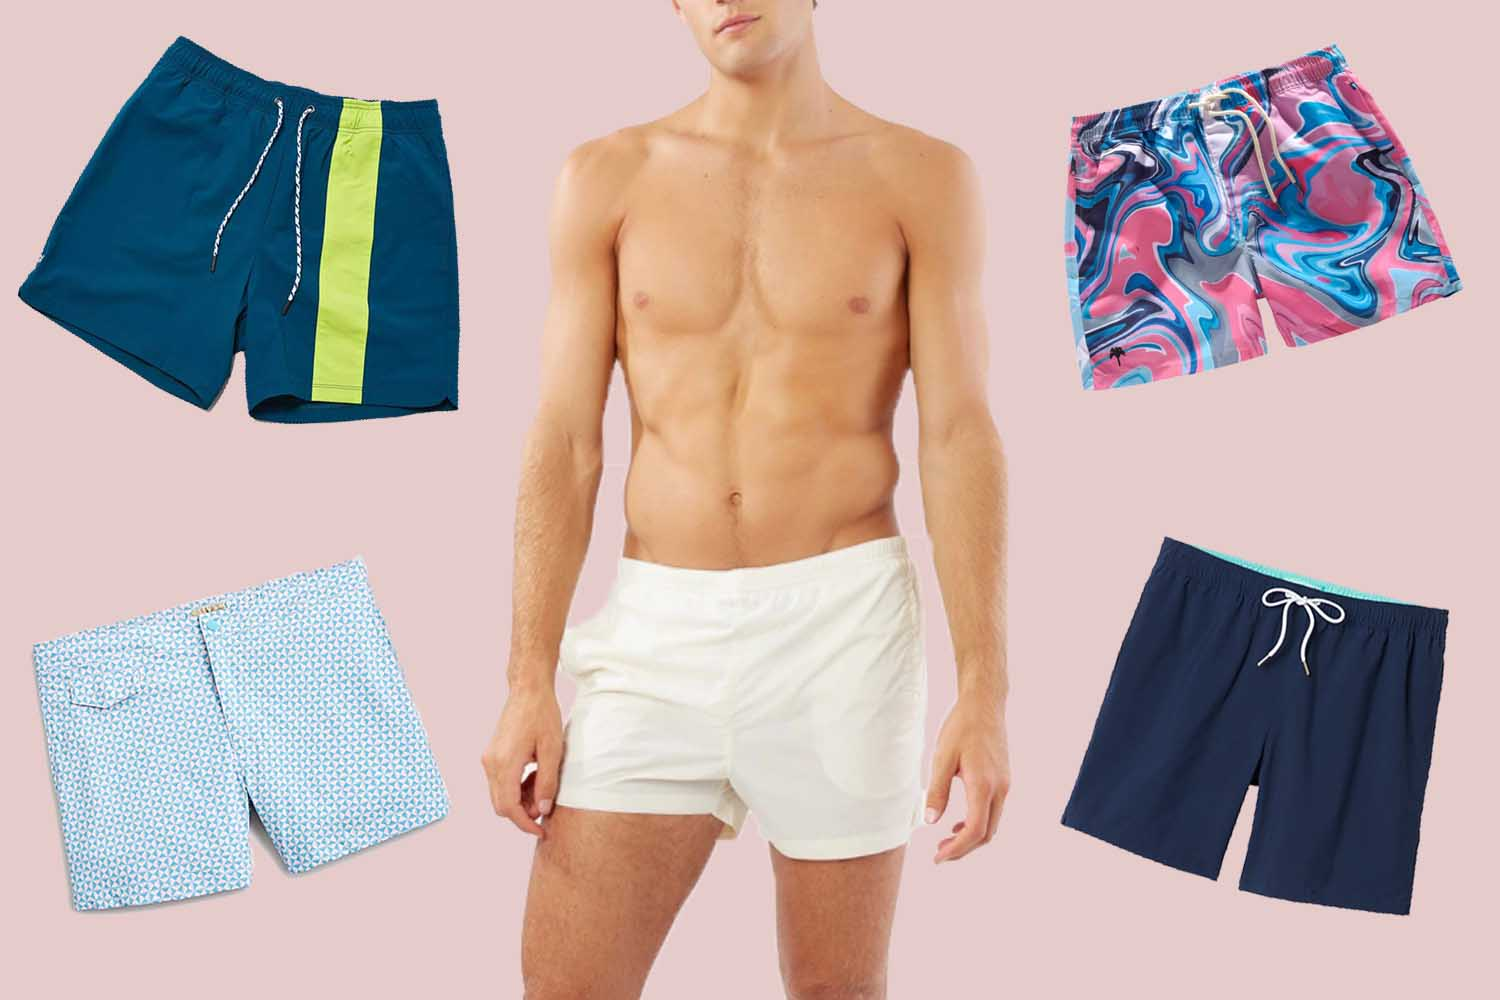 Take It From a Woman: Your Swim Shorts Need to Be Shorter